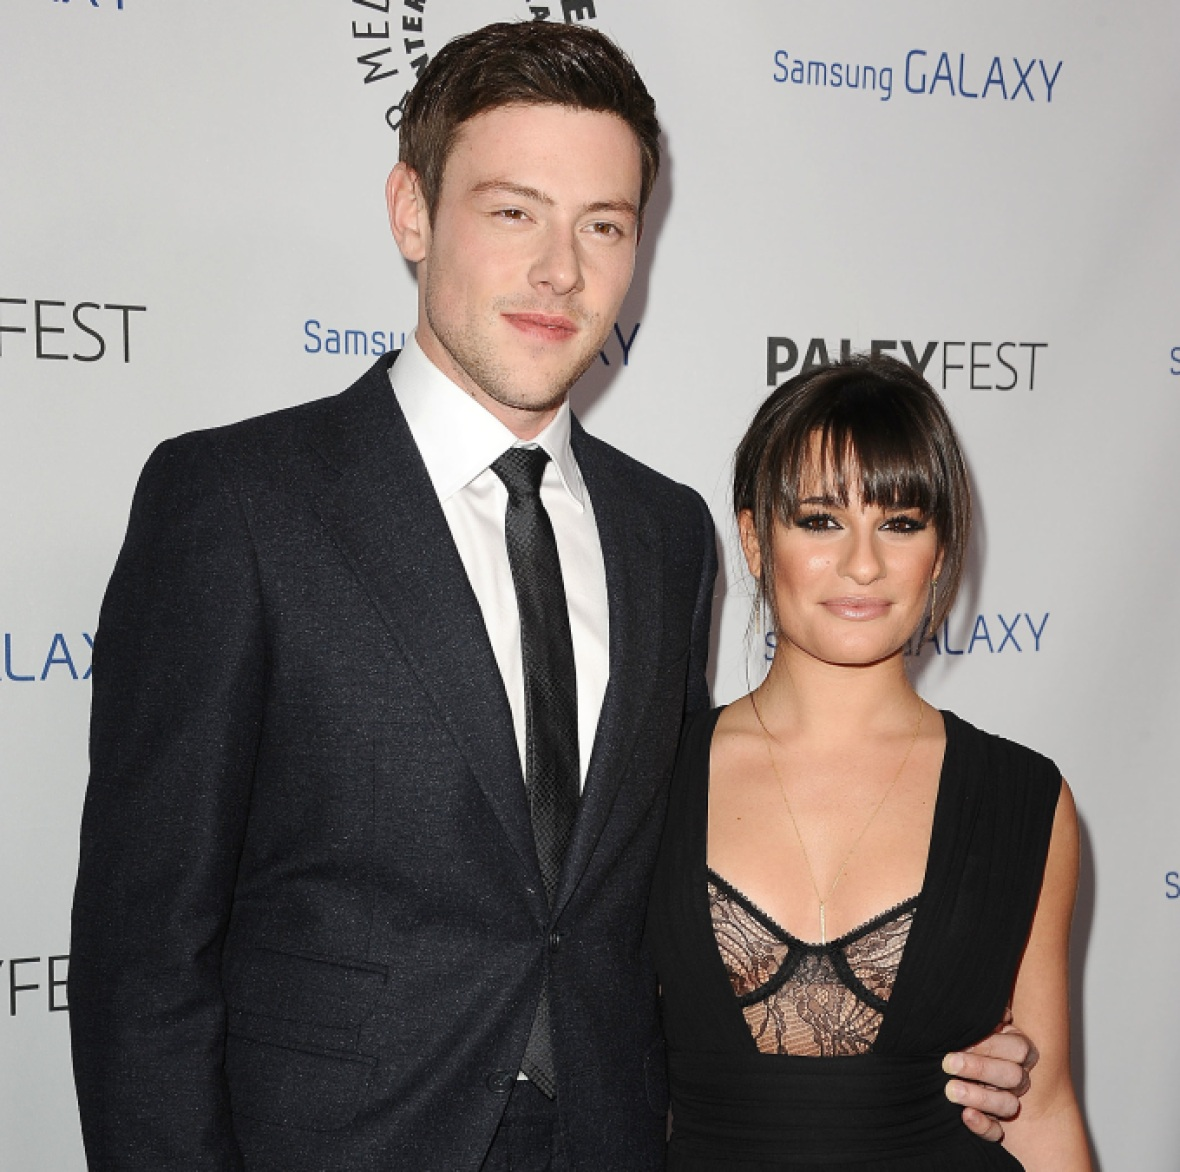 lea michele cory monteith getty images